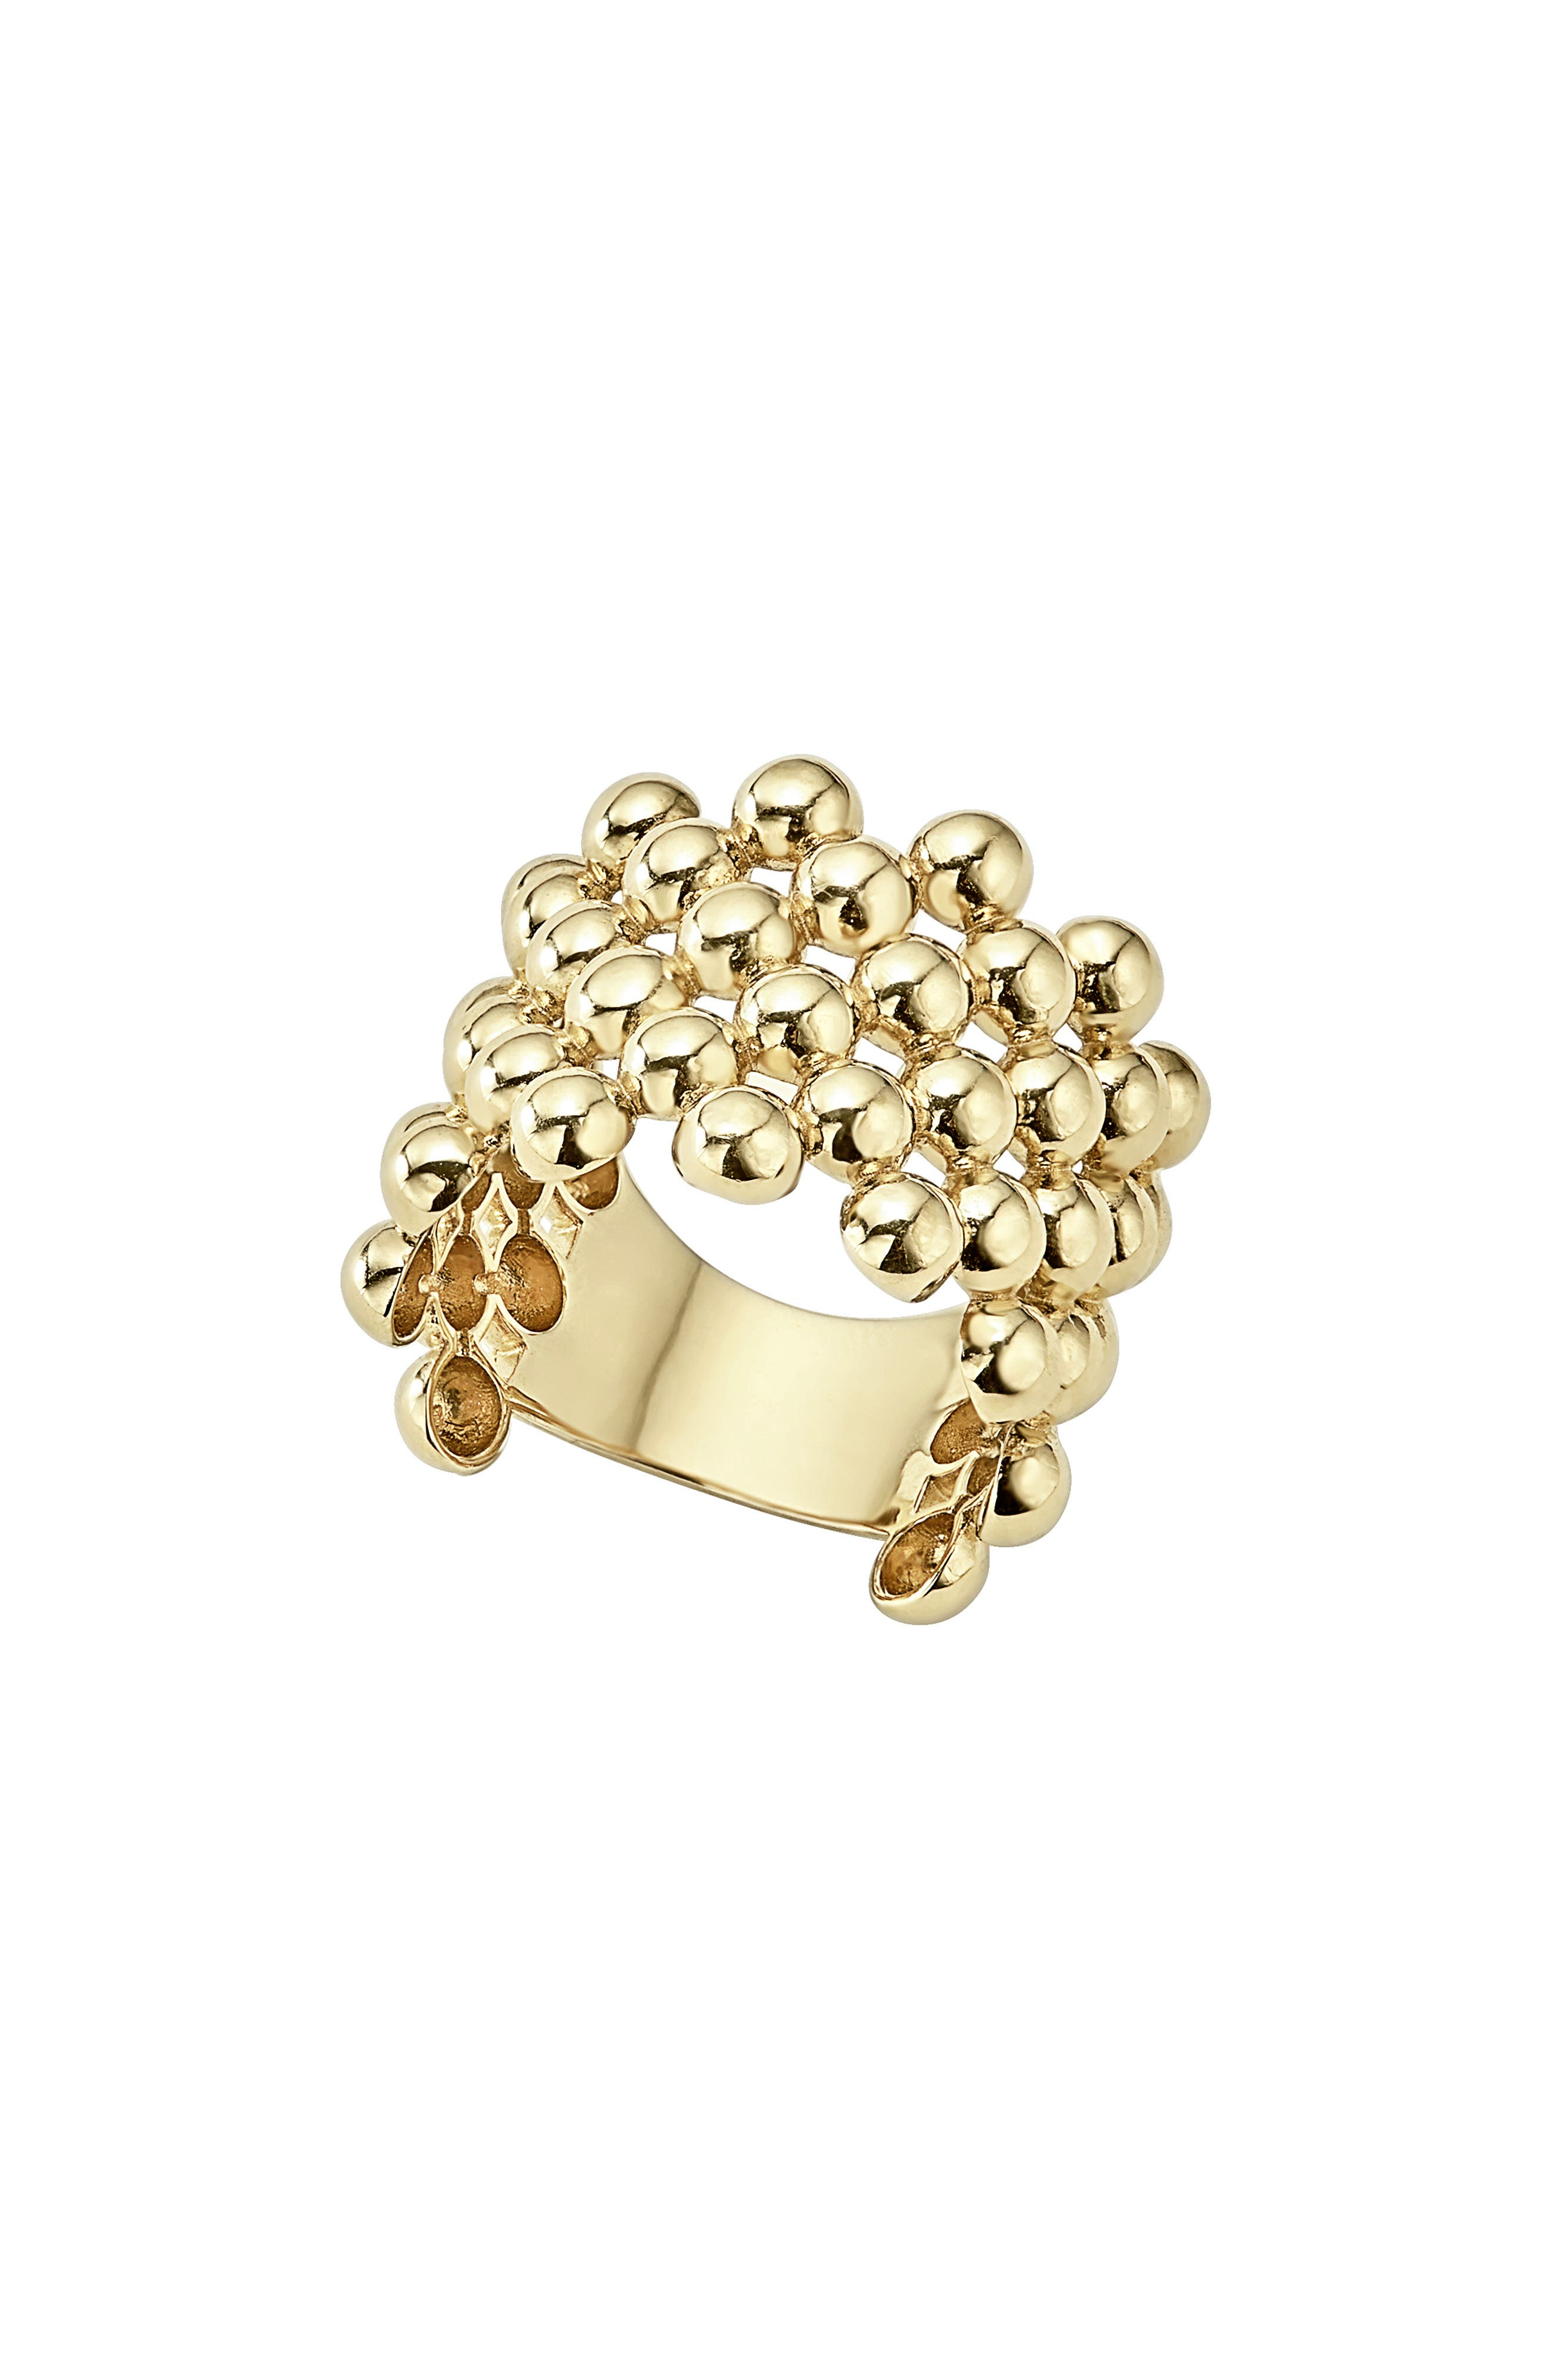 Caviar Gold Wide Band Ring,                         Main,                         color, GOLD